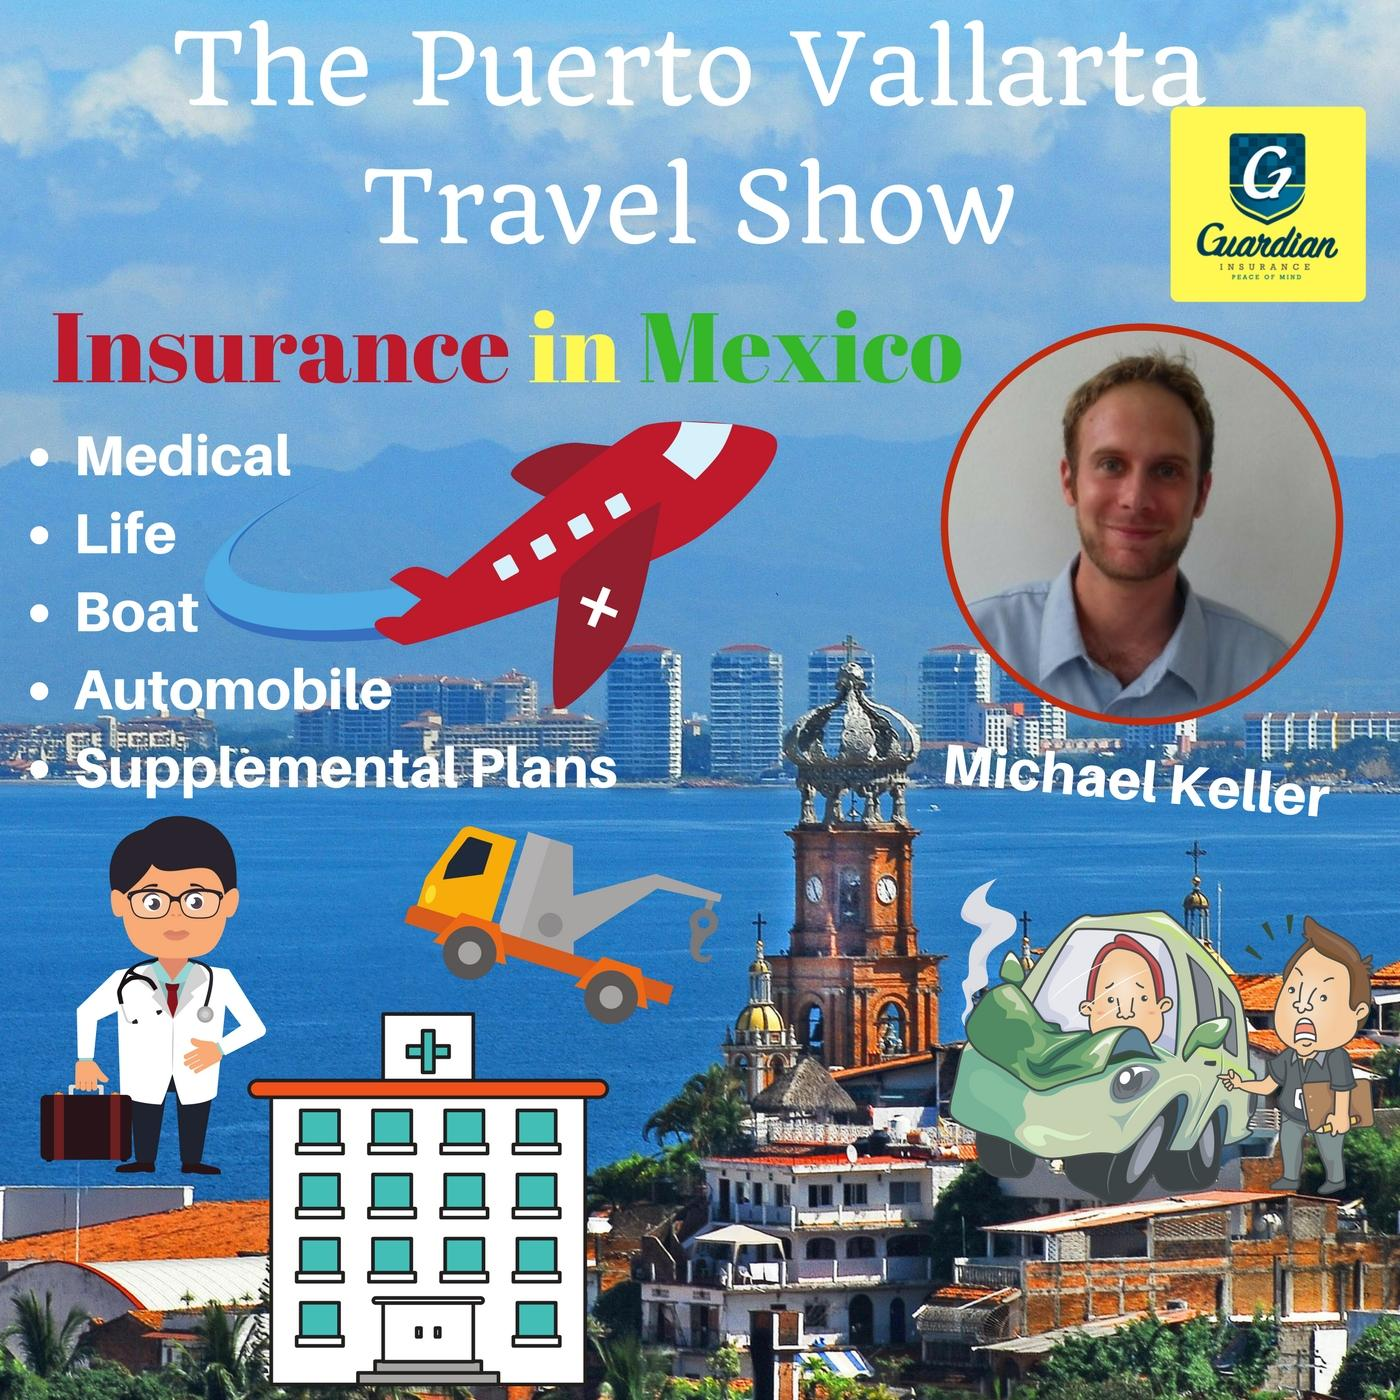 Travel Insurance For Visitors To Mexico Medical Insurance For